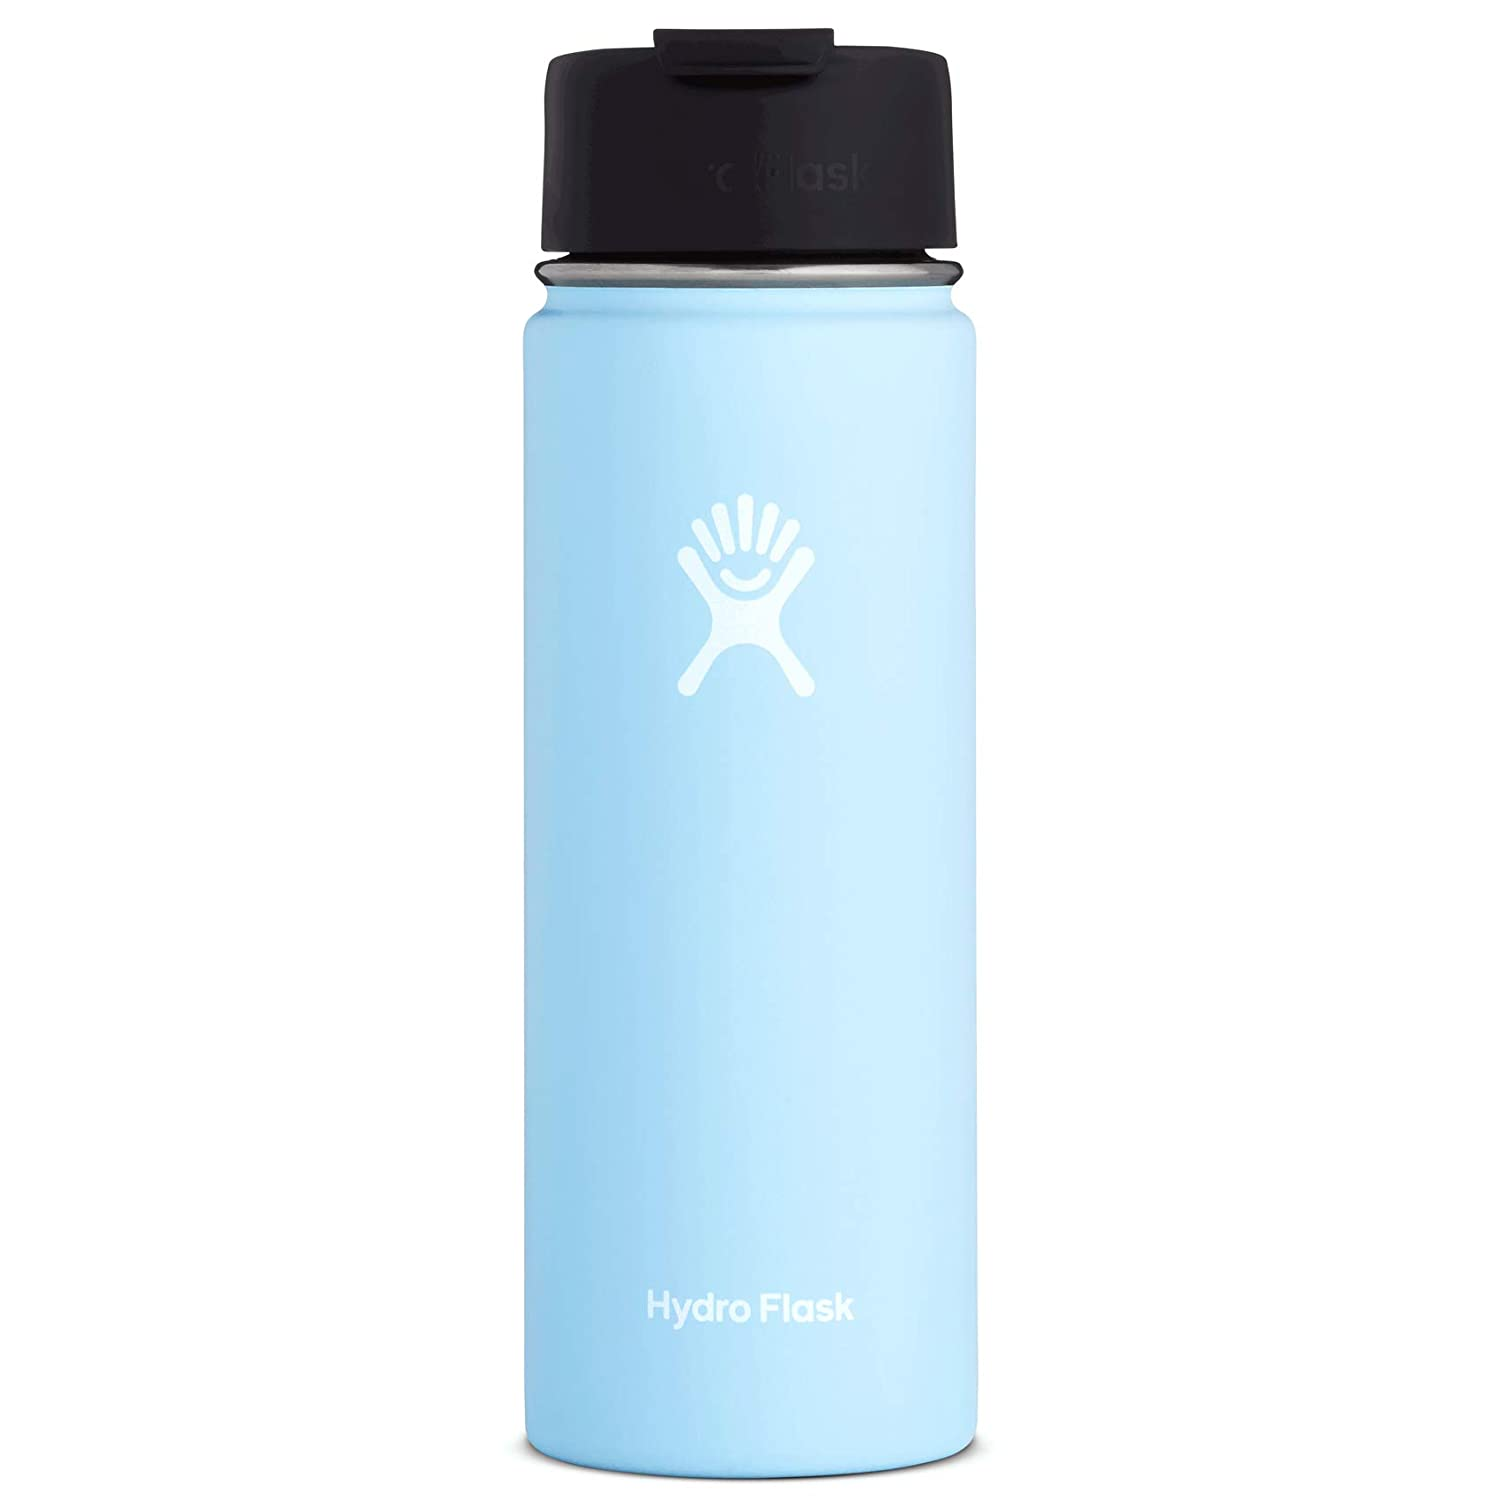 Hydro Flask Travel Coffee Flask | Stainless Steel & Vacuum Insulated | Wide Mouth with Hydro Flip Cap | Multiple Sizes & Colors